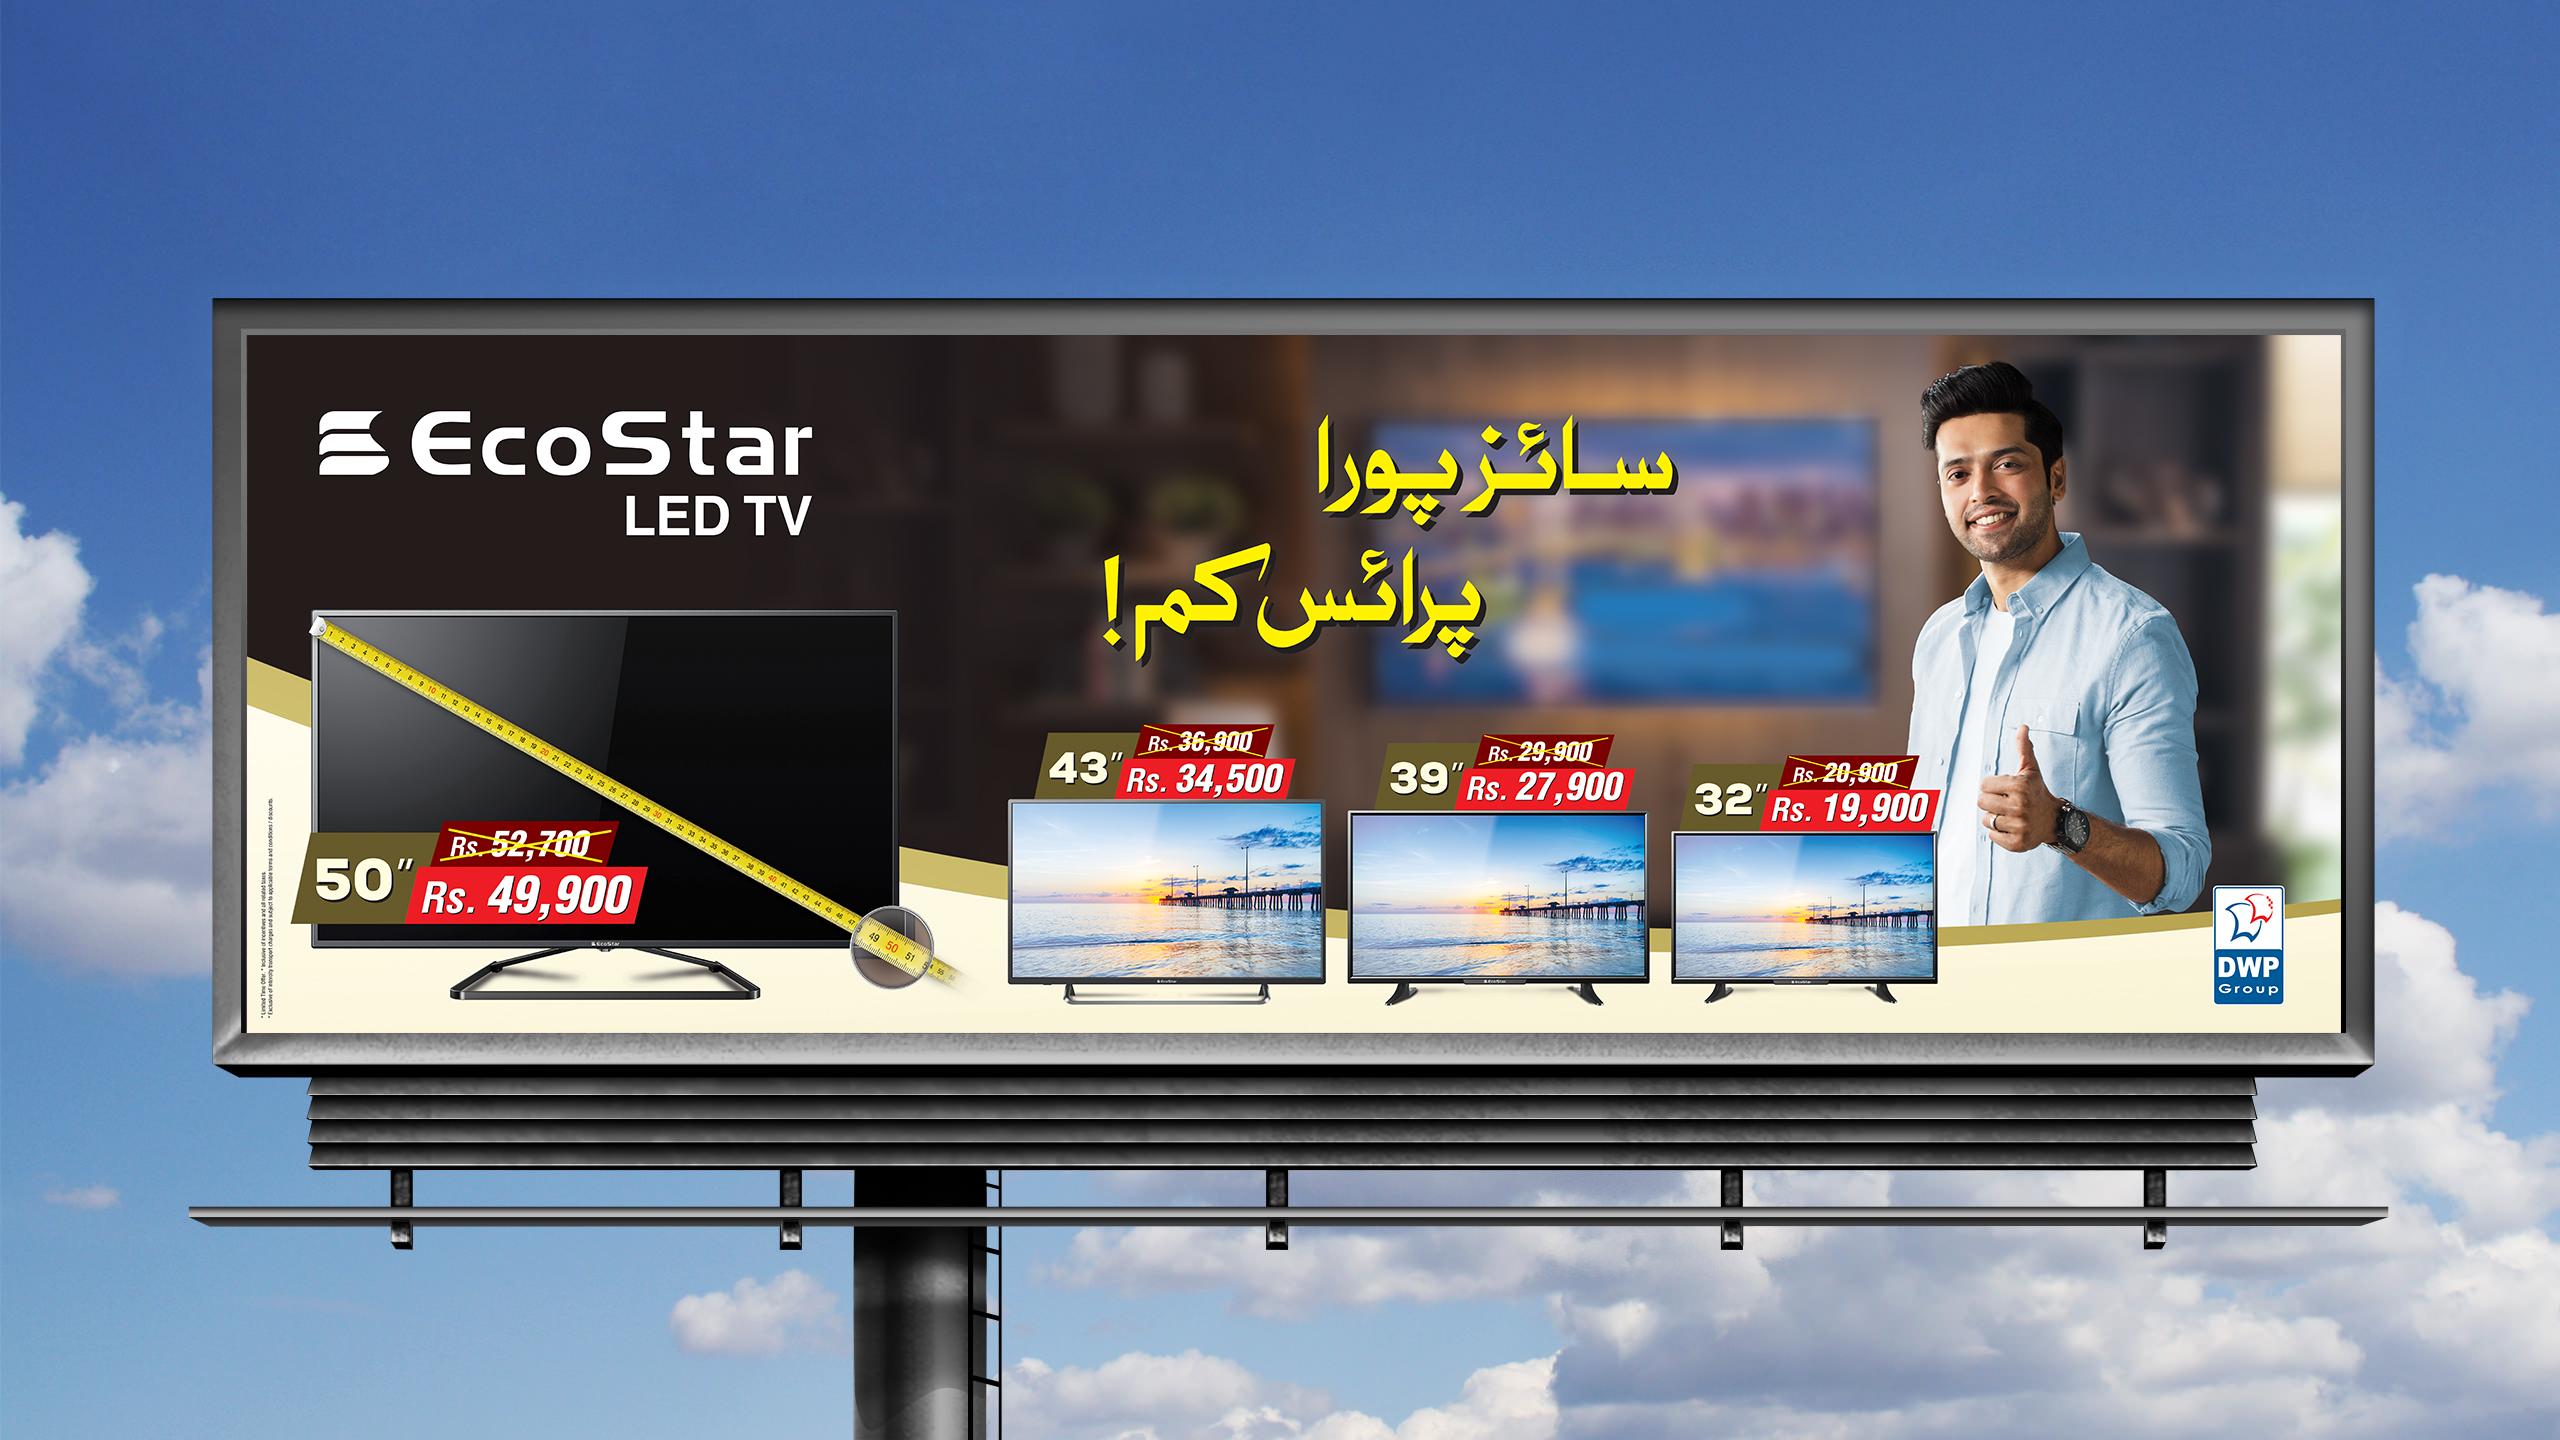 EcoStar LED TV - Size poora, price kum!